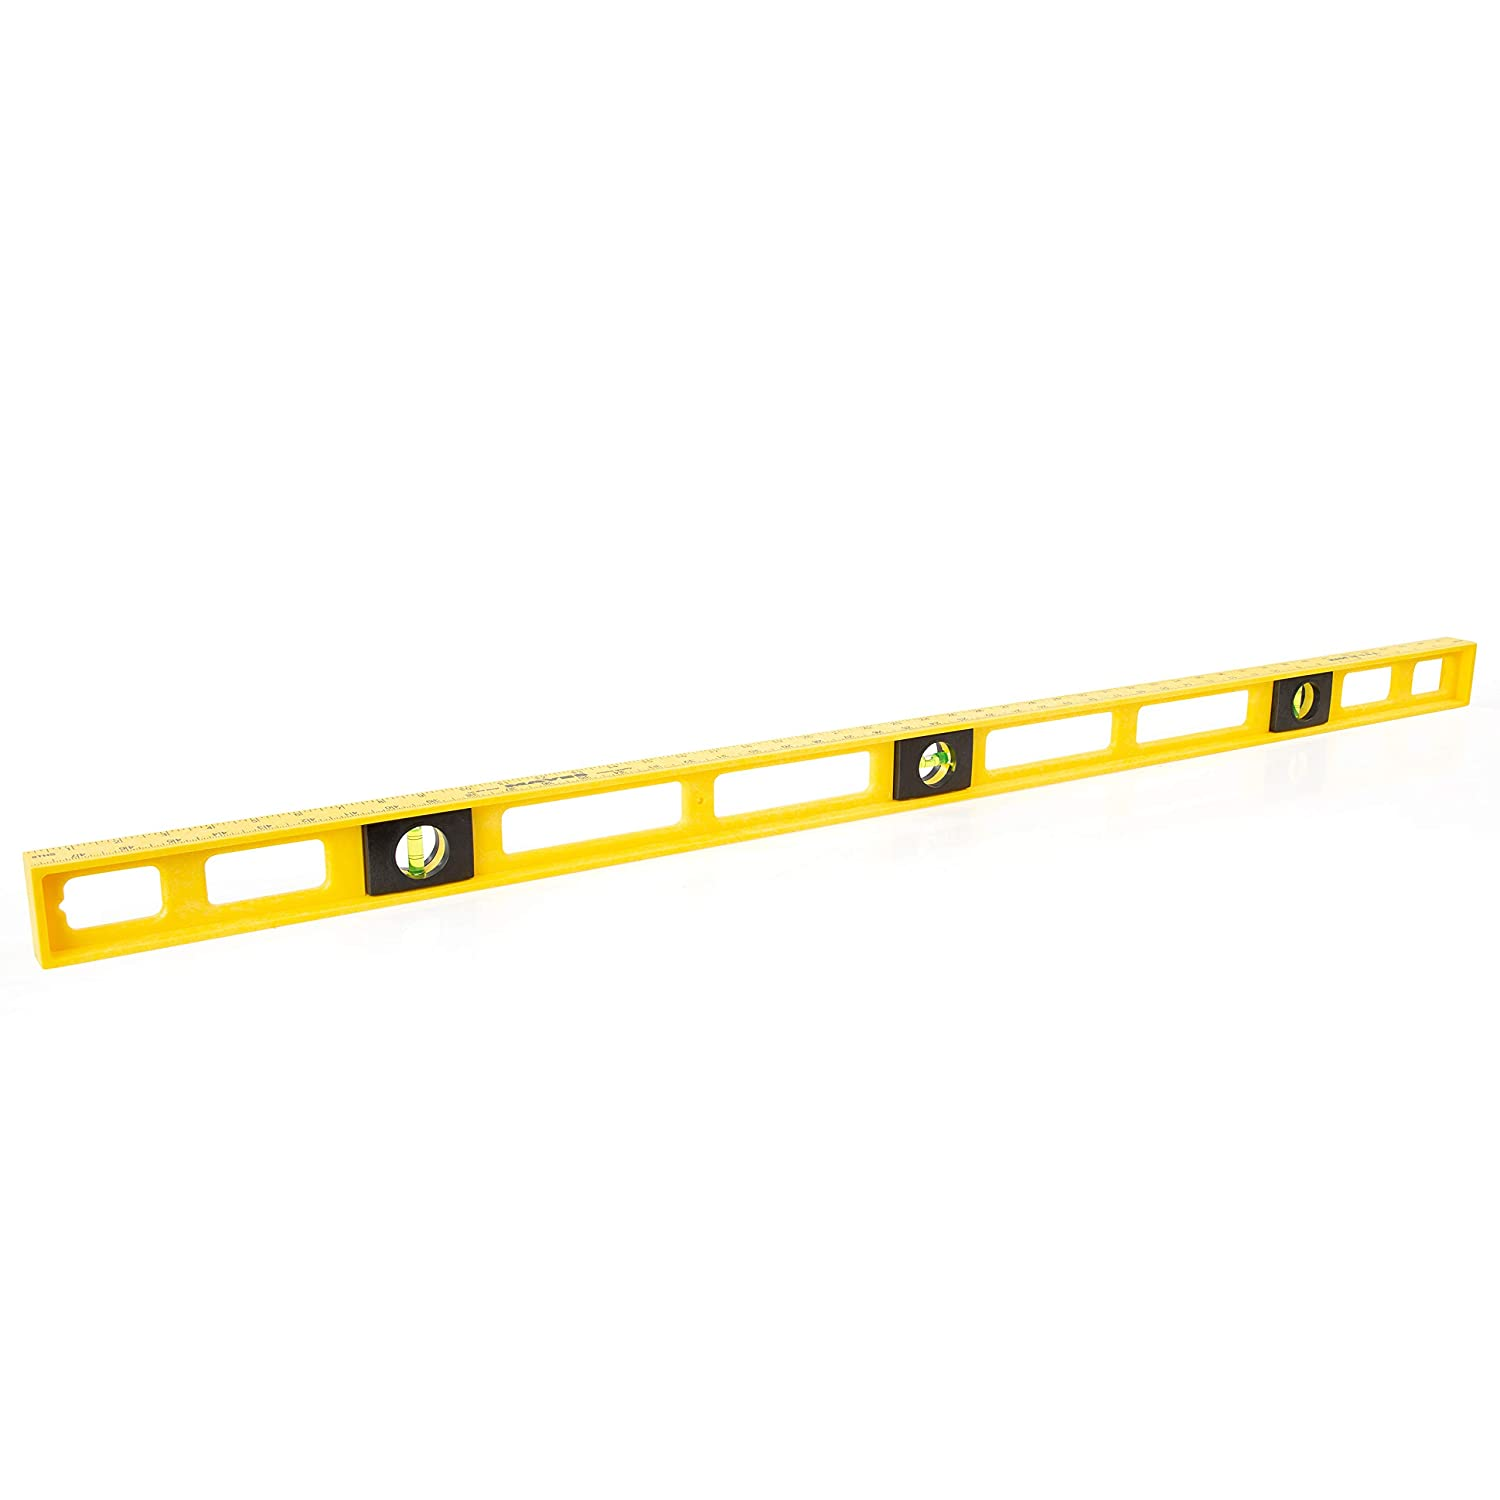 B000CFNDYI Mayes 10102 48 Inch Polystyrene Level | Carpenter, Contractor, and Plumber Tool | Impact Resistant Frame | Three Vials, Accurate to .001 Inch | Won't Scratch Work Surfaces | Made in the USA 71fPvmX4G5L